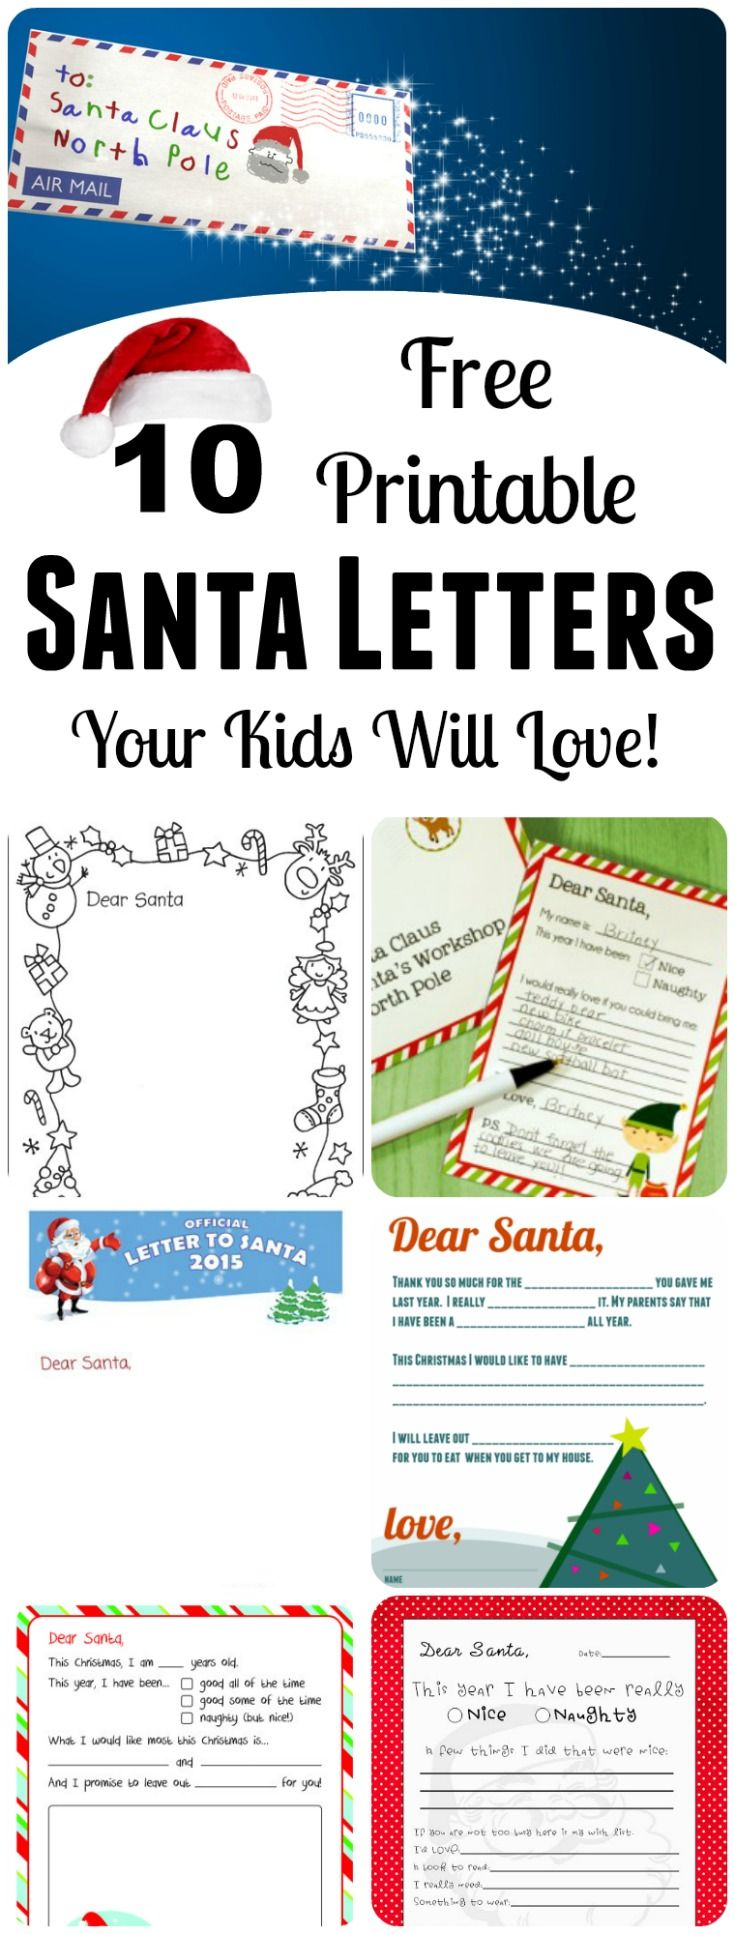 Free Santa Letters! 10 Free Printable Templates for those Letters to Santa your little ones will soon be writing! Make it easy for them...give them one of these!